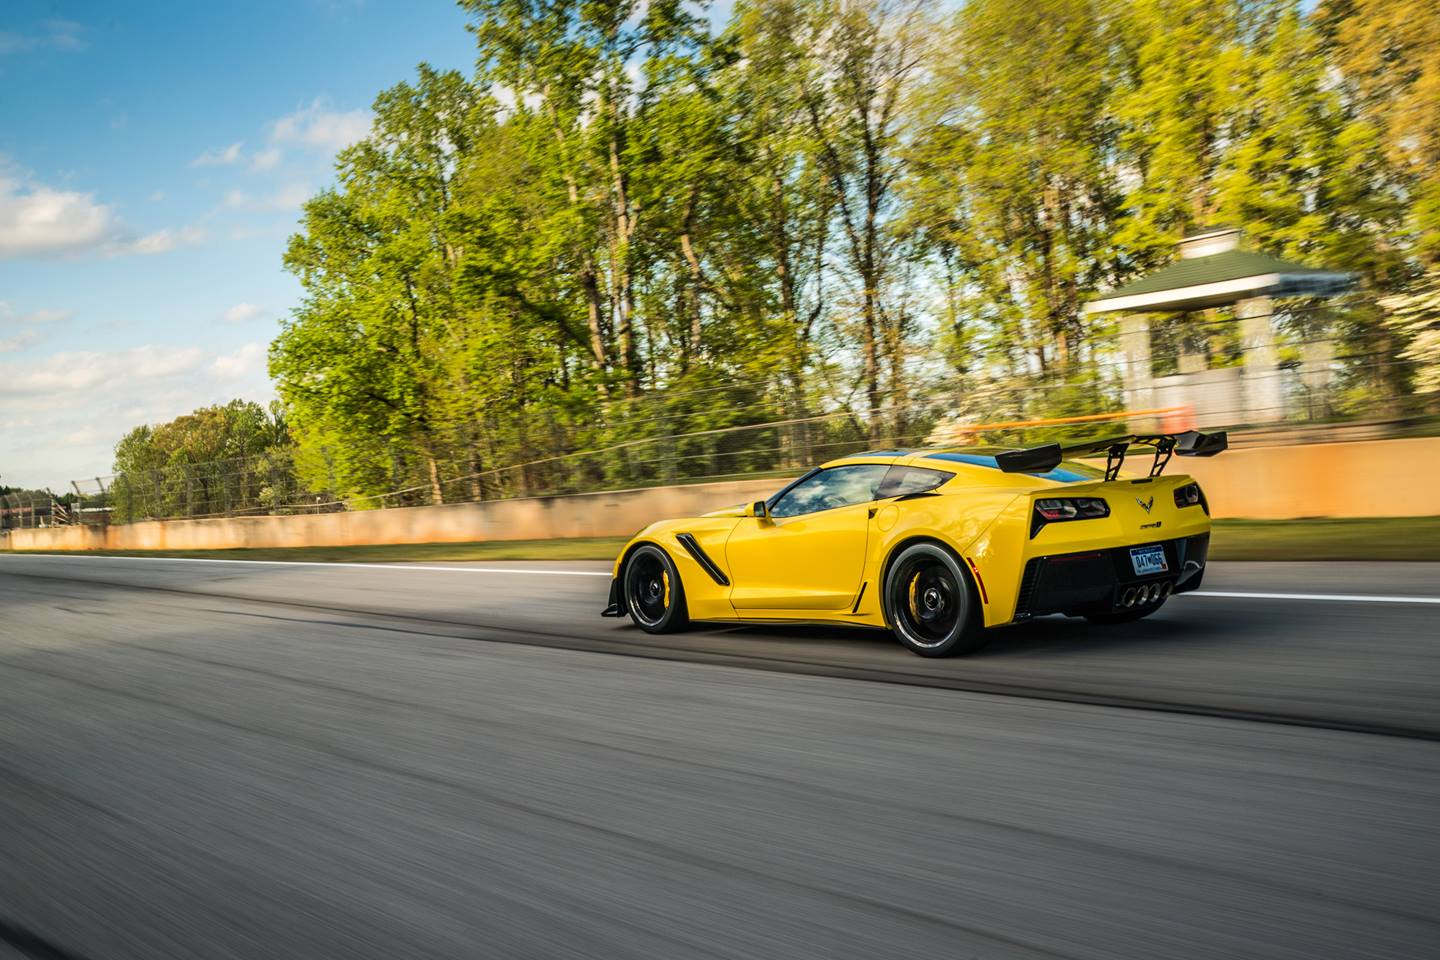 2019 chevrolet corvette zr1 side yellow track